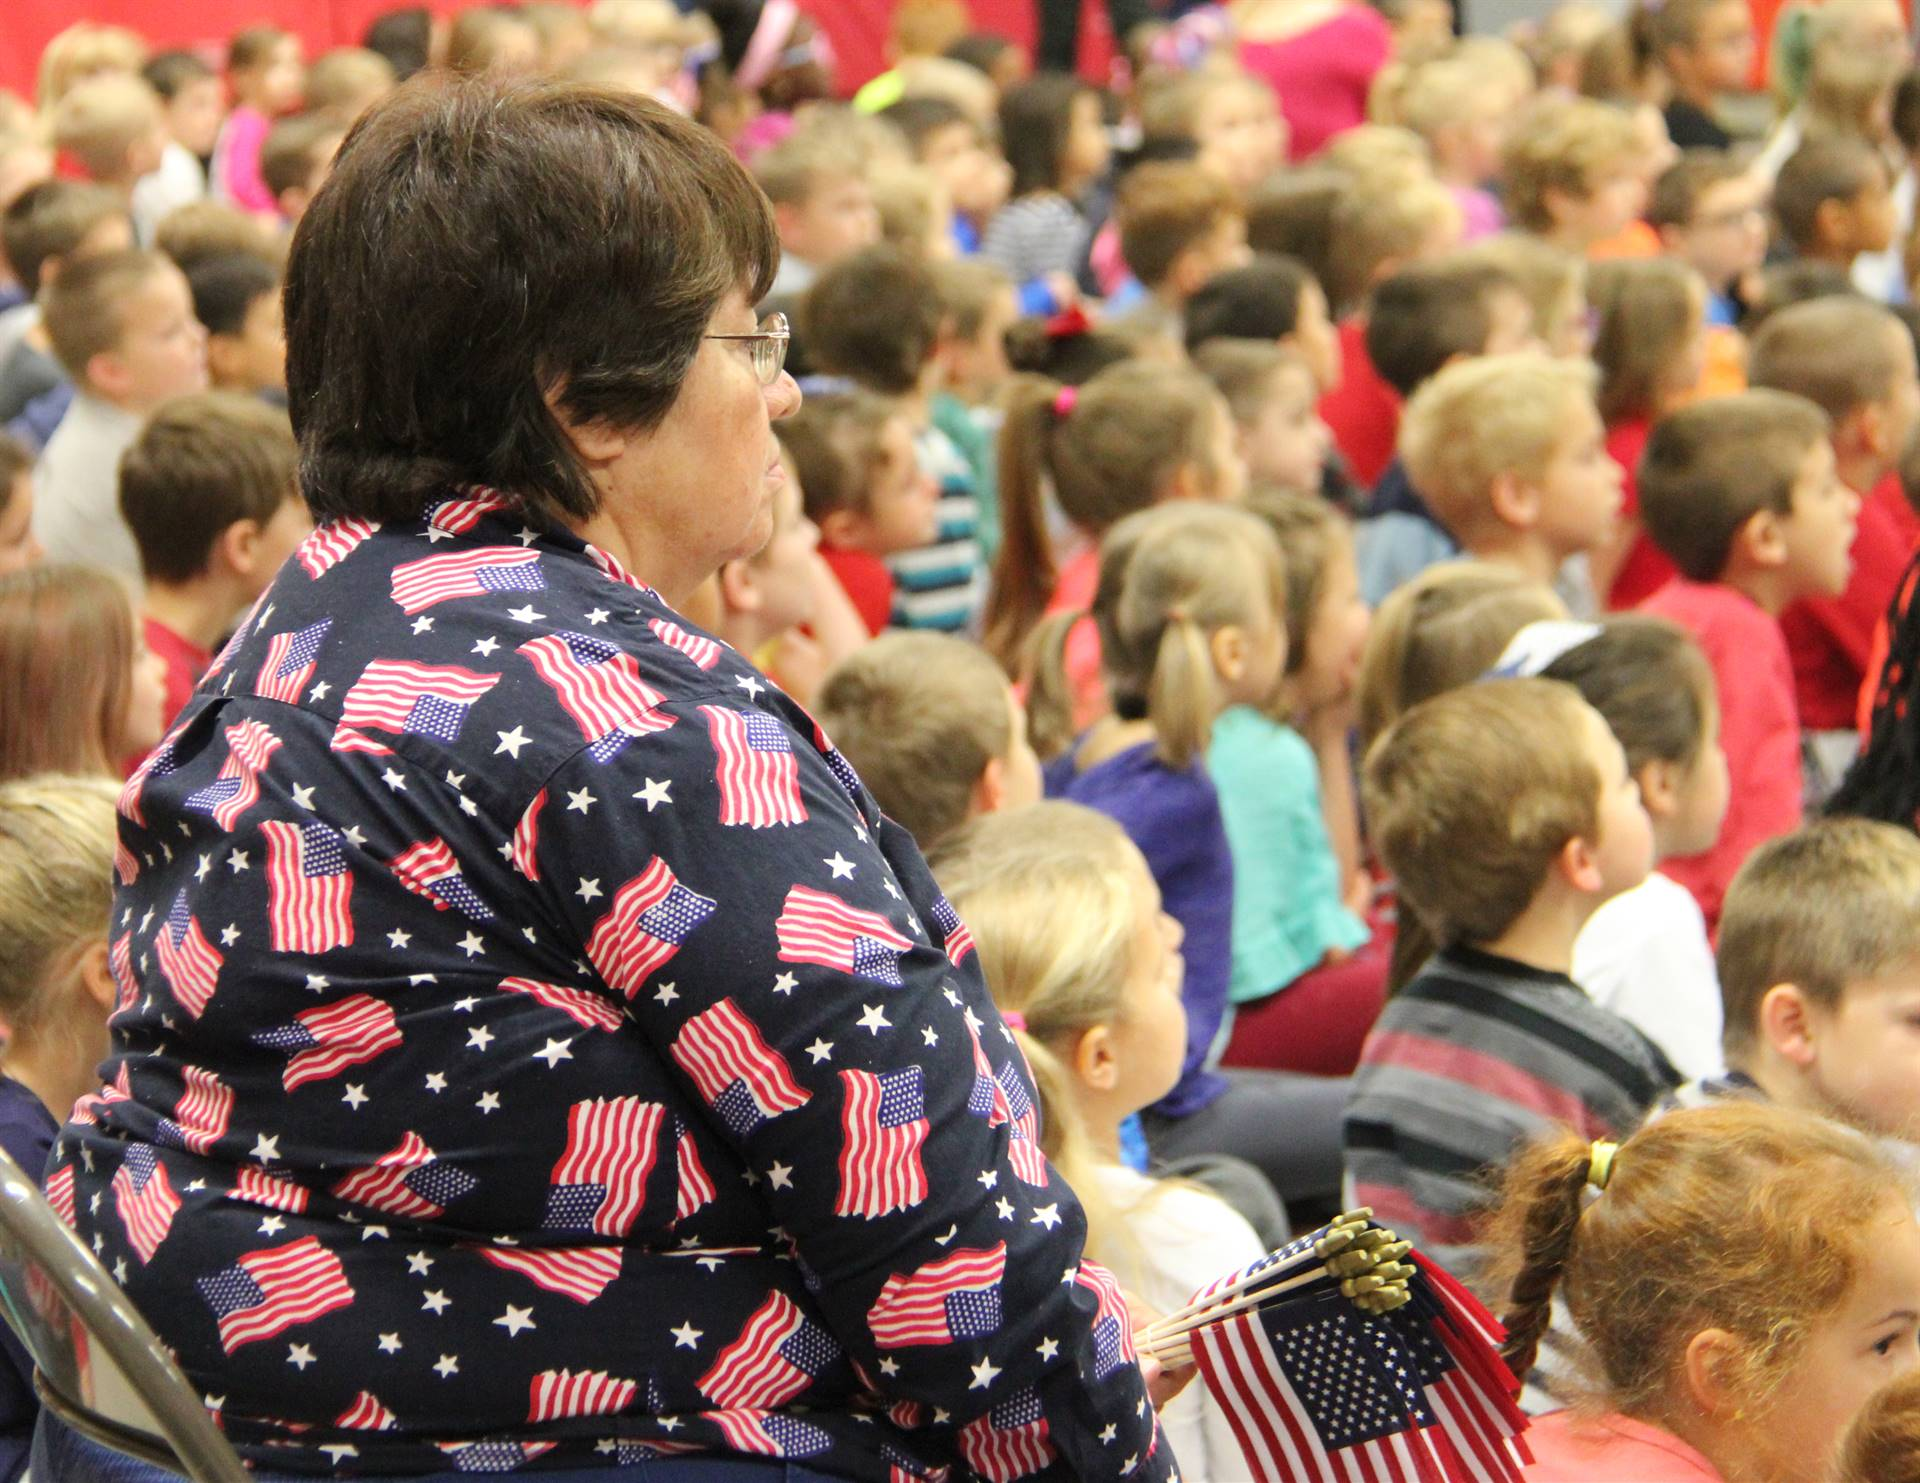 teaching holding flags wearing american flag shirt